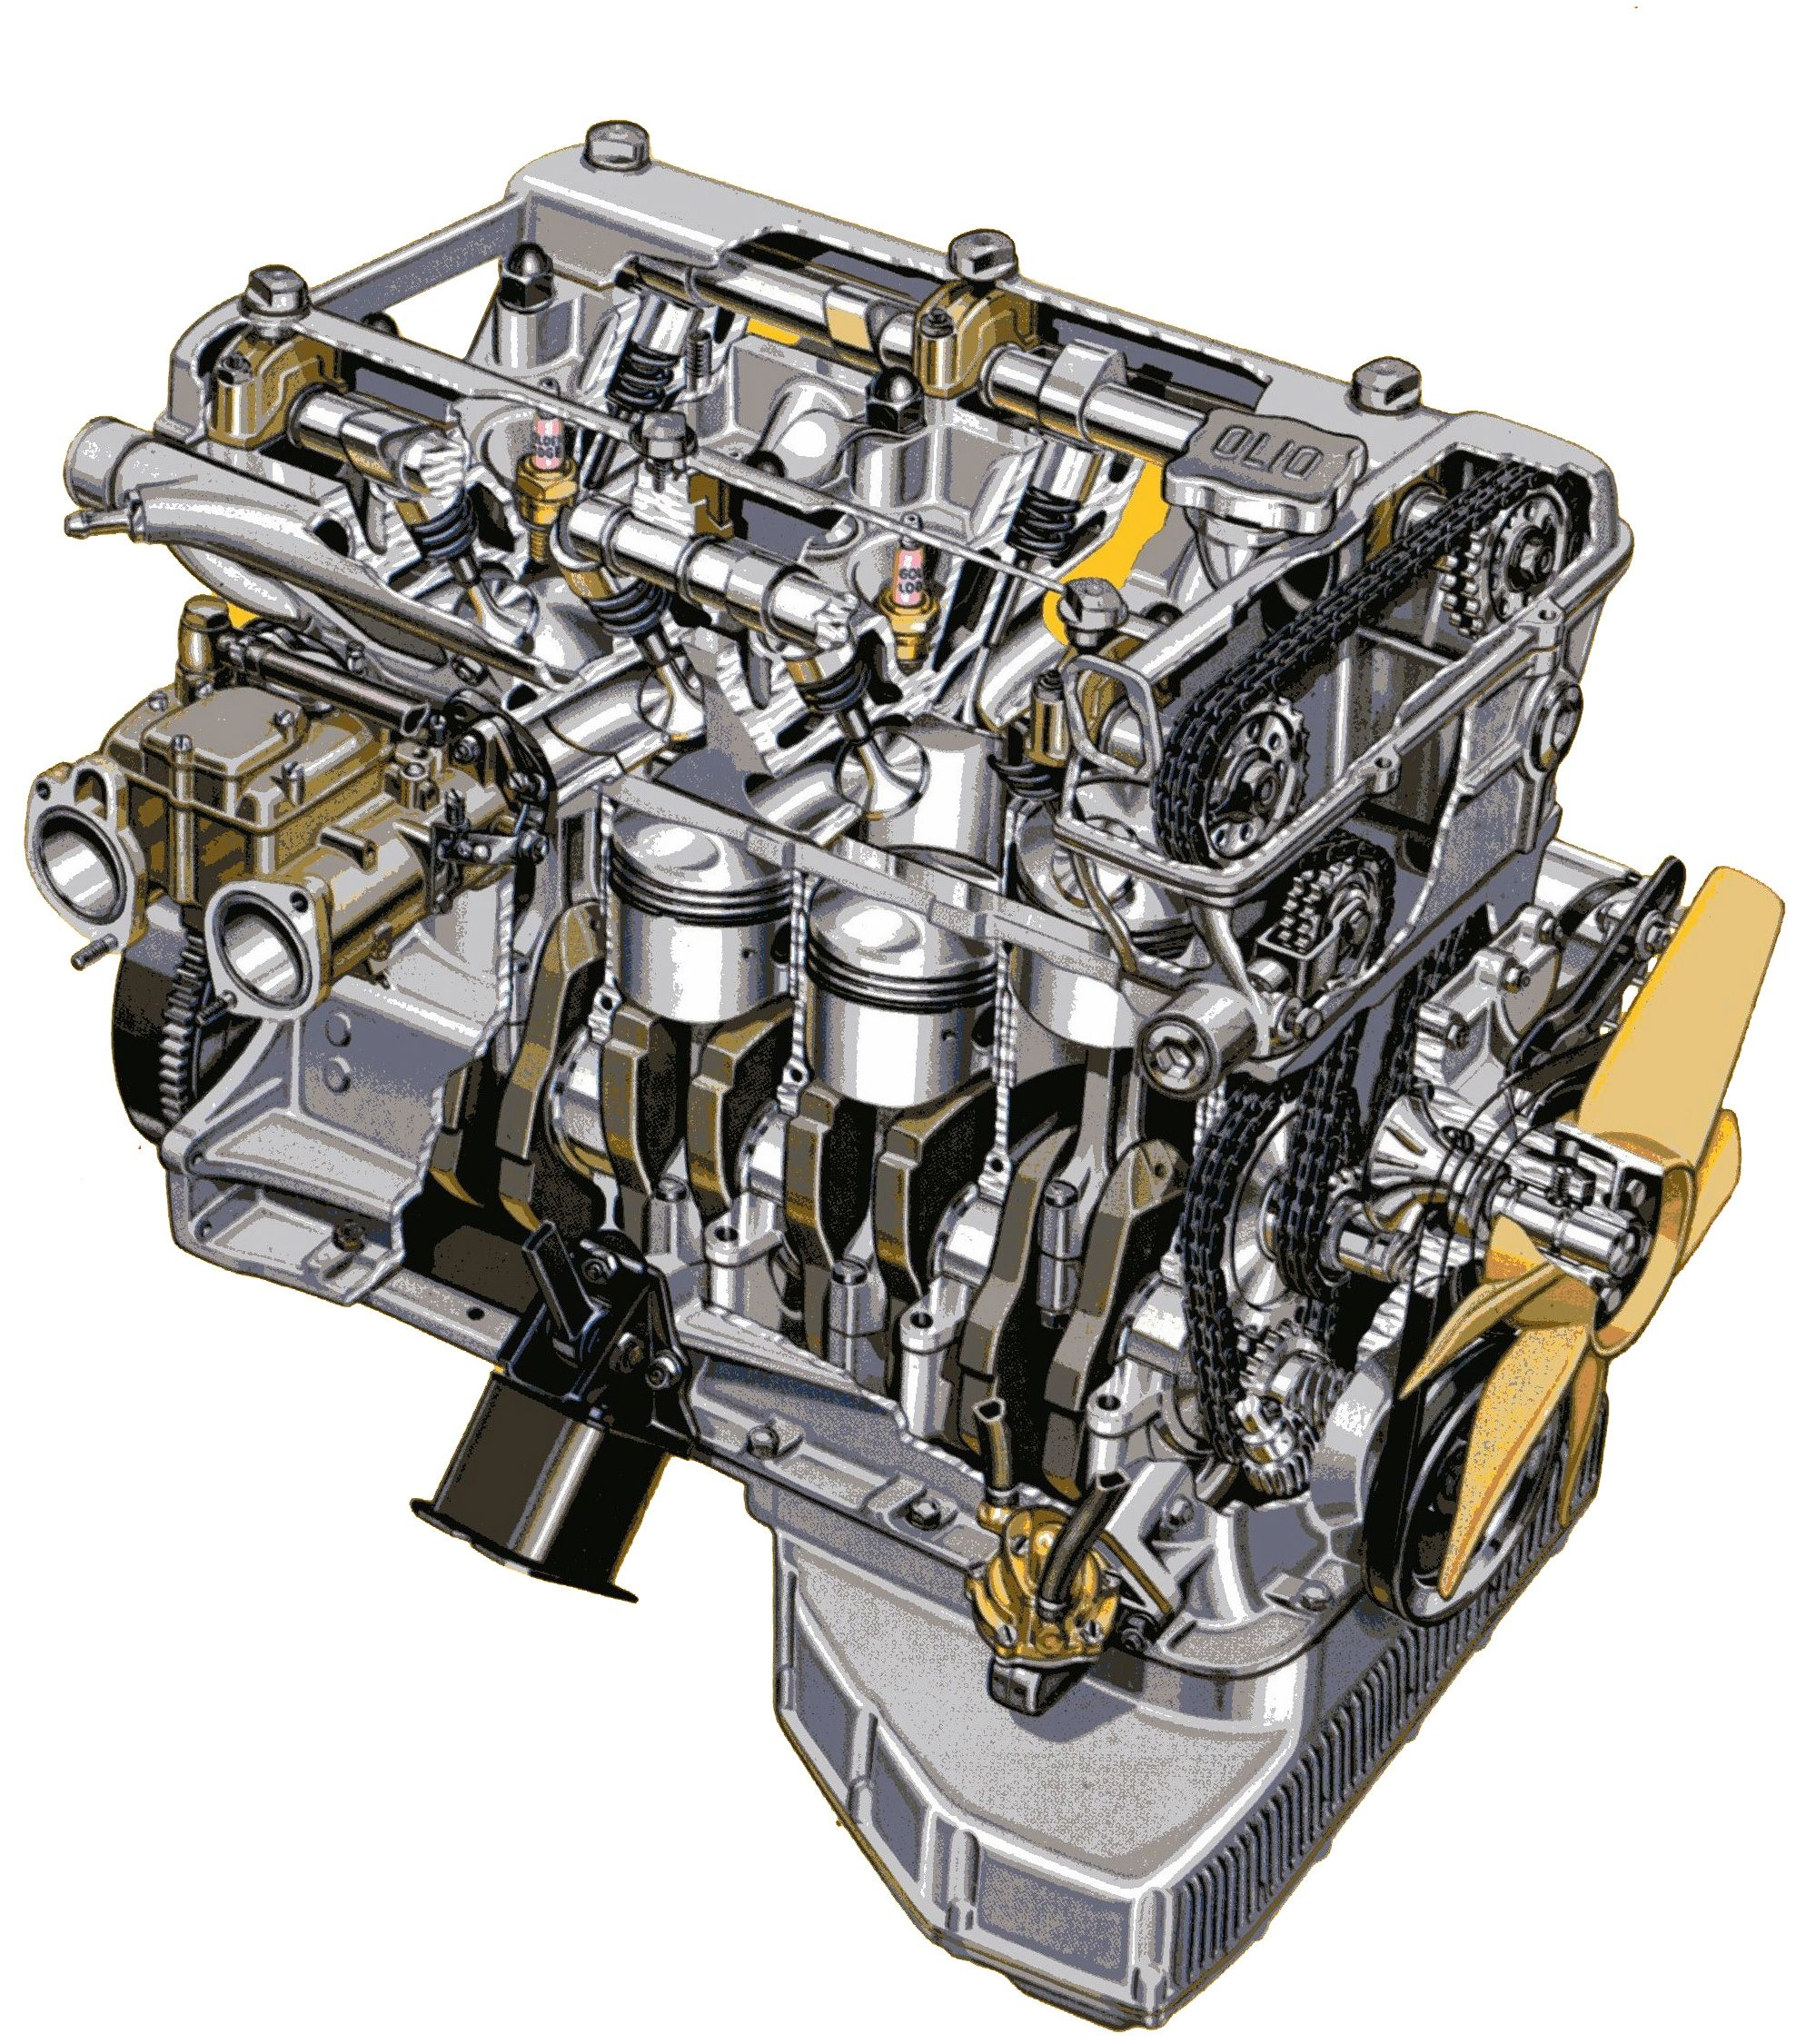 hight resolution of spider alfa romeo nord engine diagram simple wiring diagrams shankle alfa romeo spider alfa romeo nord engine diagram